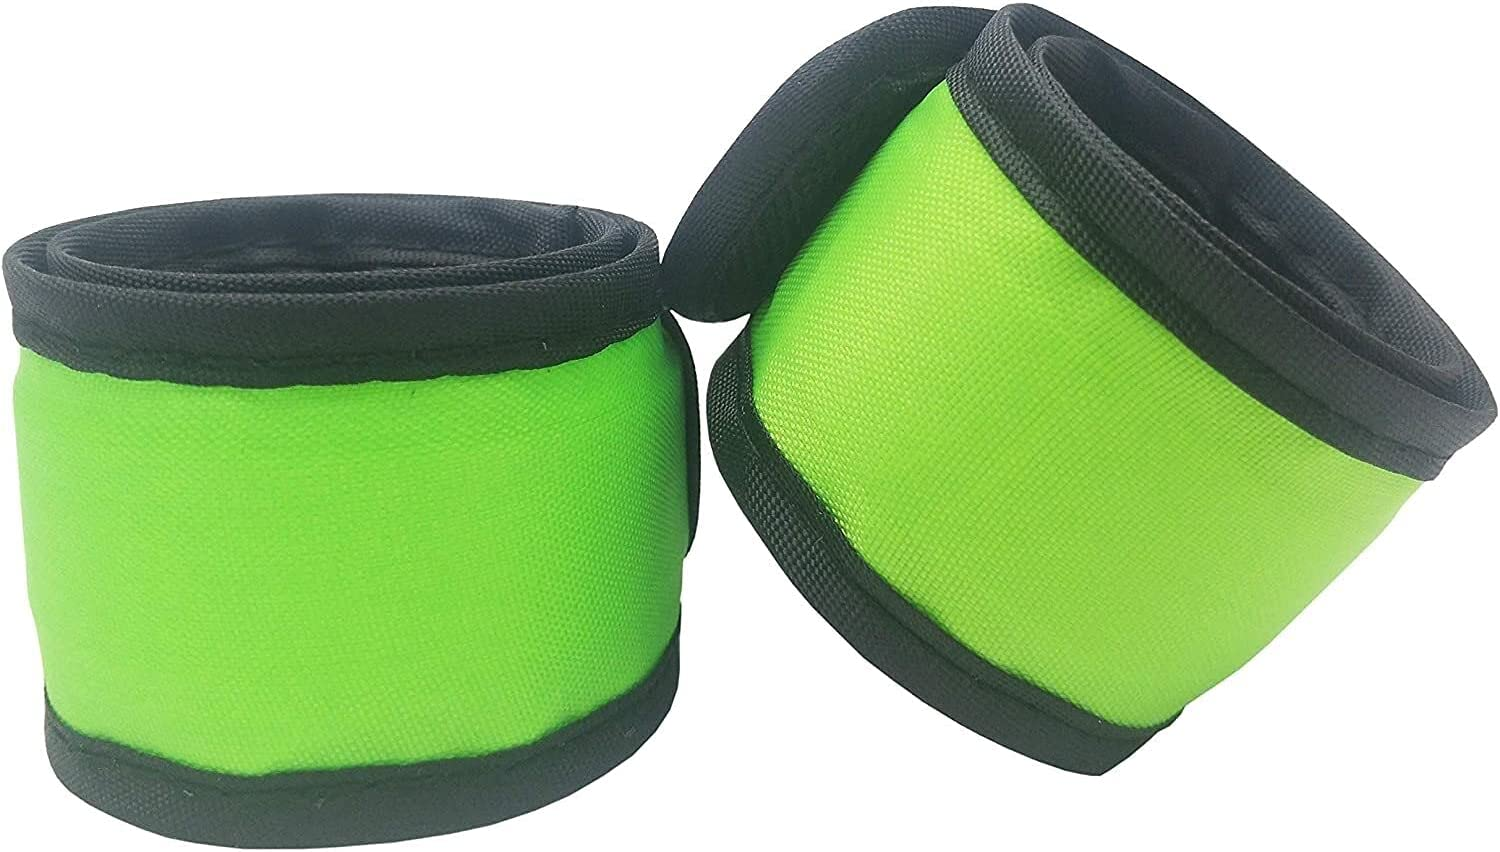 Pack of 2 LED Light Max 88% Ranking TOP3 OFF Up Armband Brace Slap Gear Reflective Lights